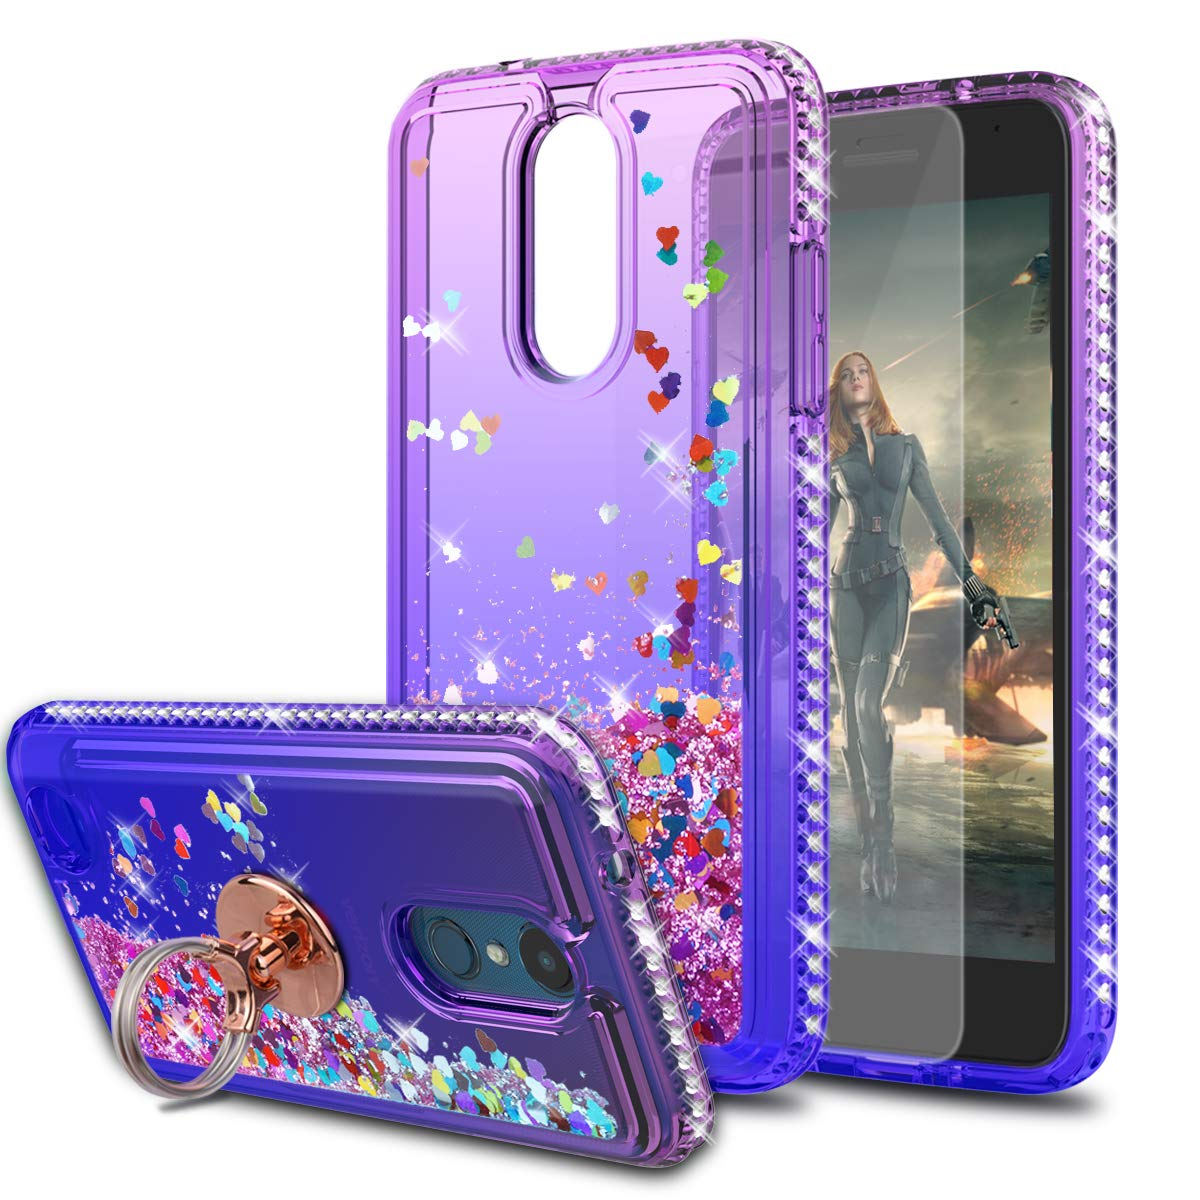 LG Zone 4/Aristo 2/Tribute Empire/Tribute Dynasty/Rebel 4/Phoenix 4/Risio 3/Fortune 2 Case with HD Screen Protector with Ring Holder,KaiMai Glitter Liquid Cute Case for LG Aristo 3-Pueple/Blue Ring